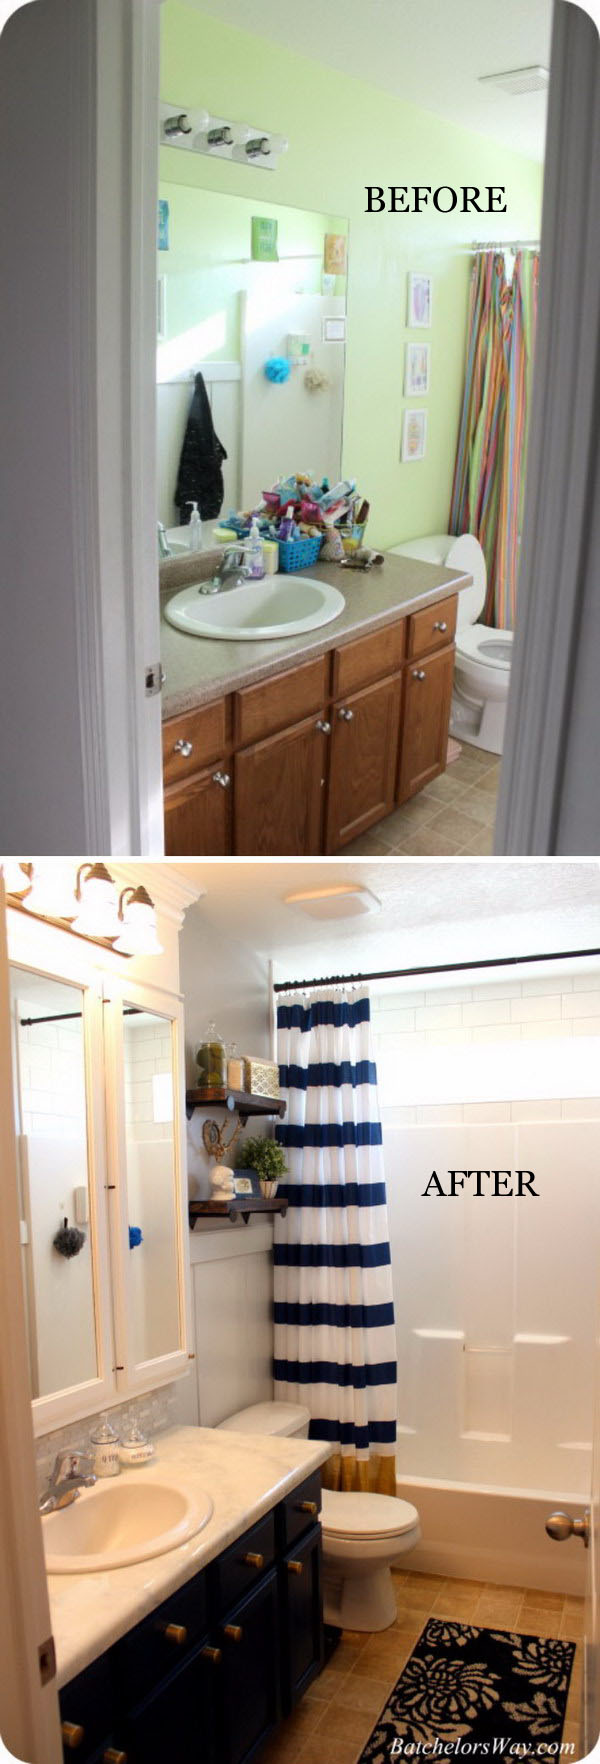 51-52-bathroom-remodel-before-and-after